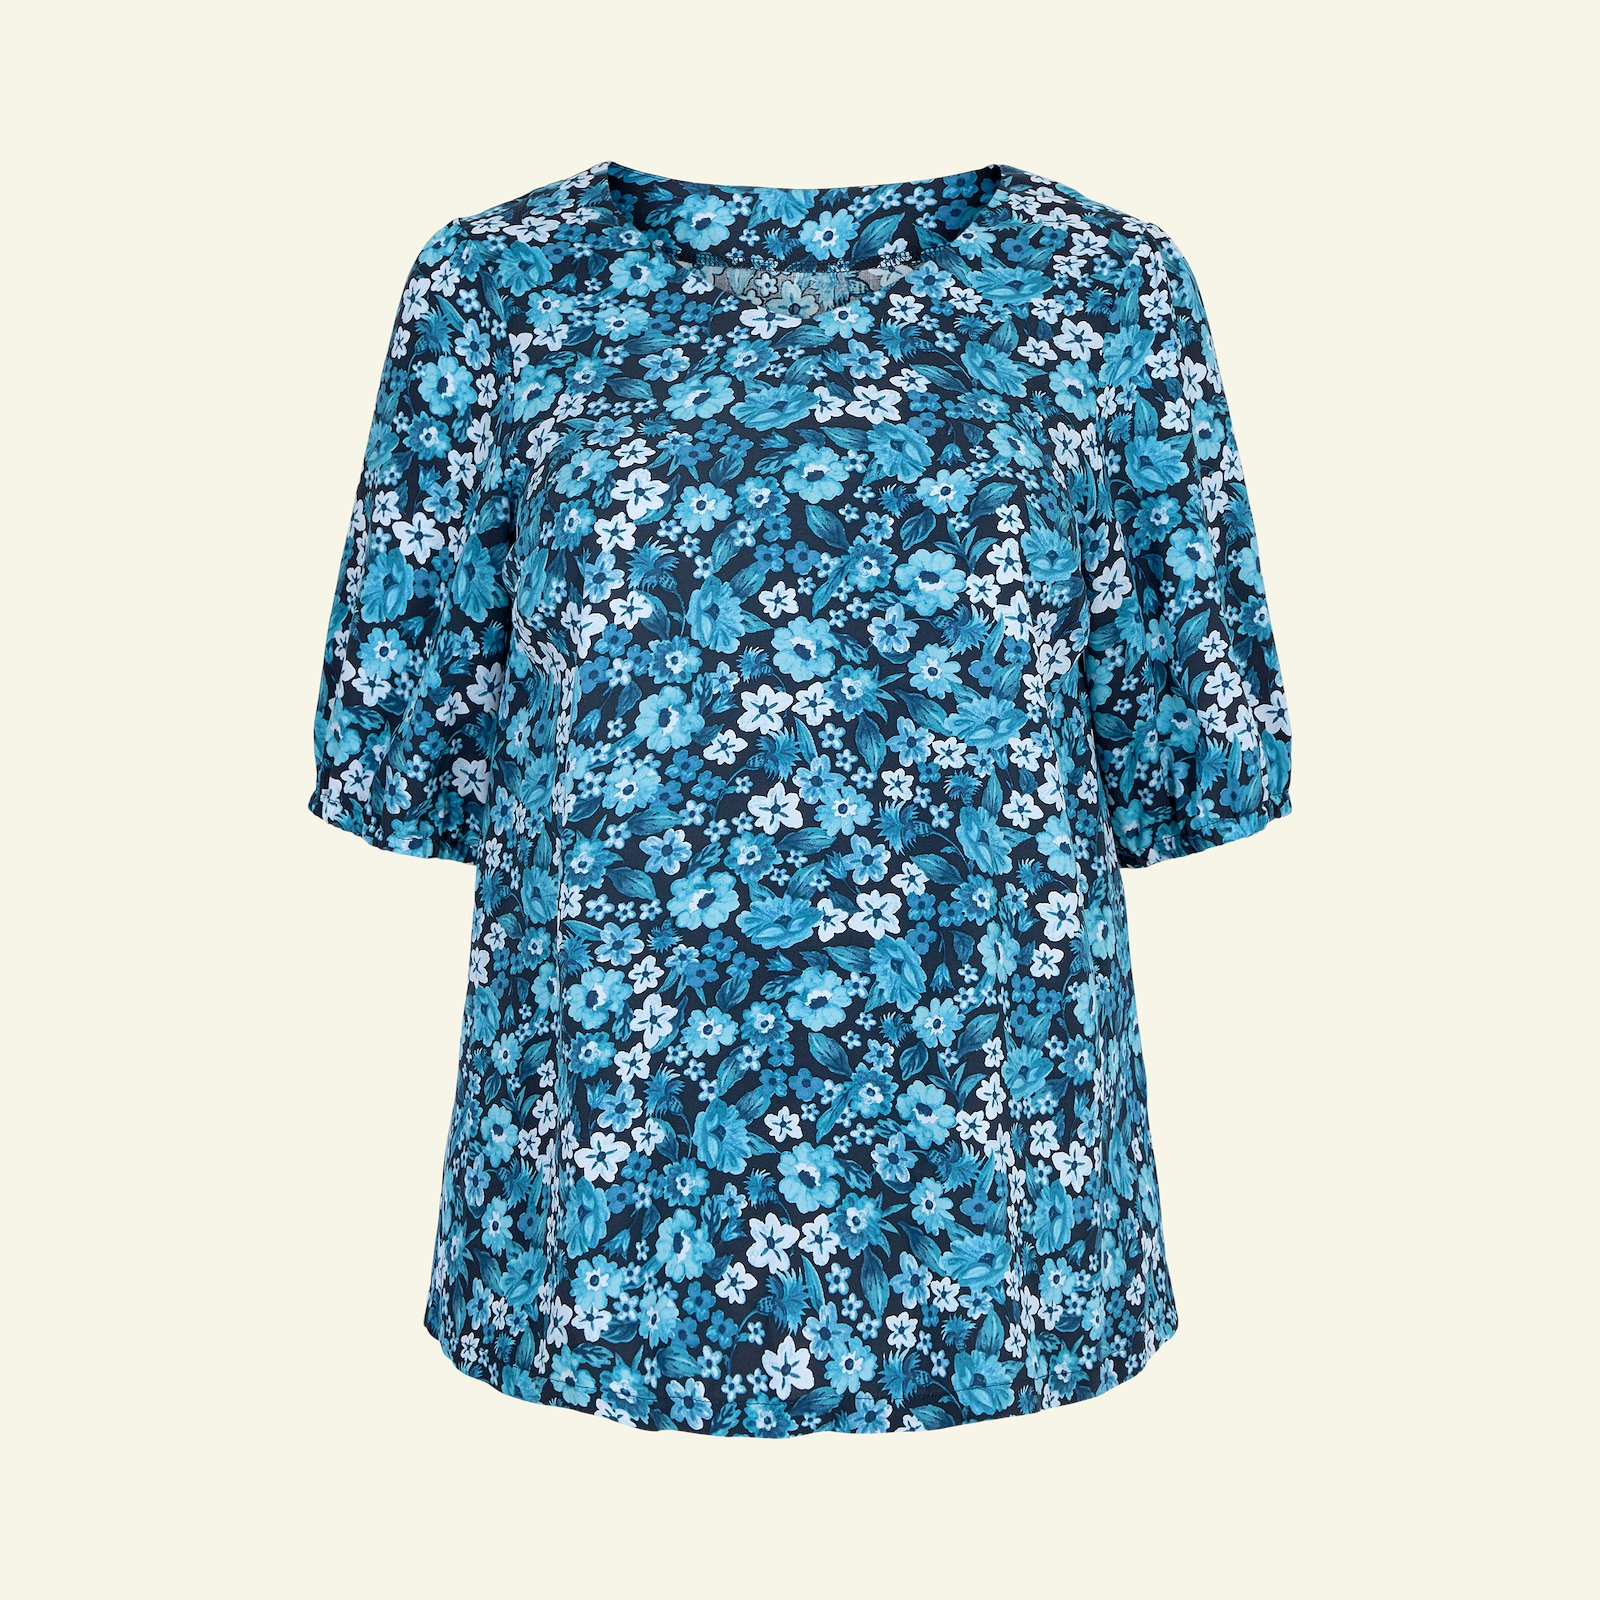 Blouse with long and short sleeve, 50/22 p72006_710656_sskit